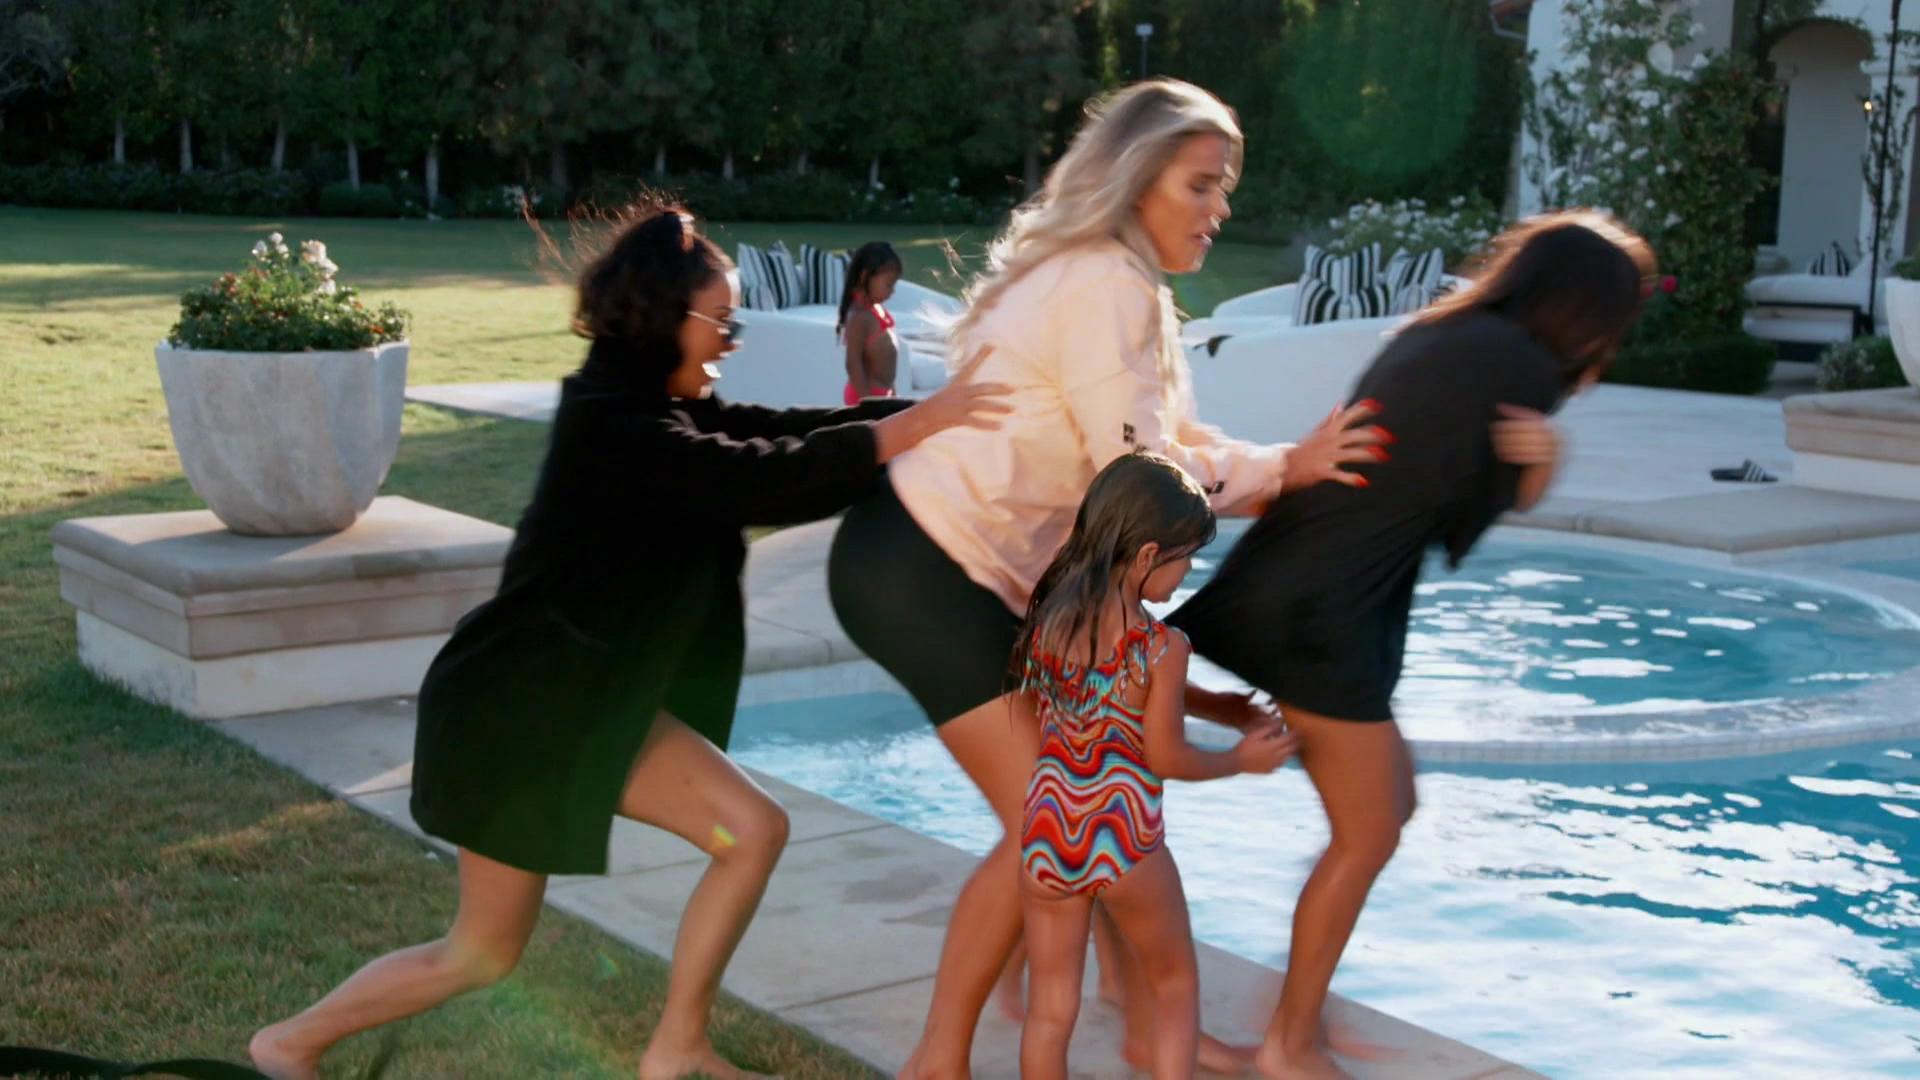 Khloe Kardashian Fansite 0150 Keeping Up With The Kardashians – EPISODE 15.15 - Stacking the Deck! - Video streaming, Caps & Ratings